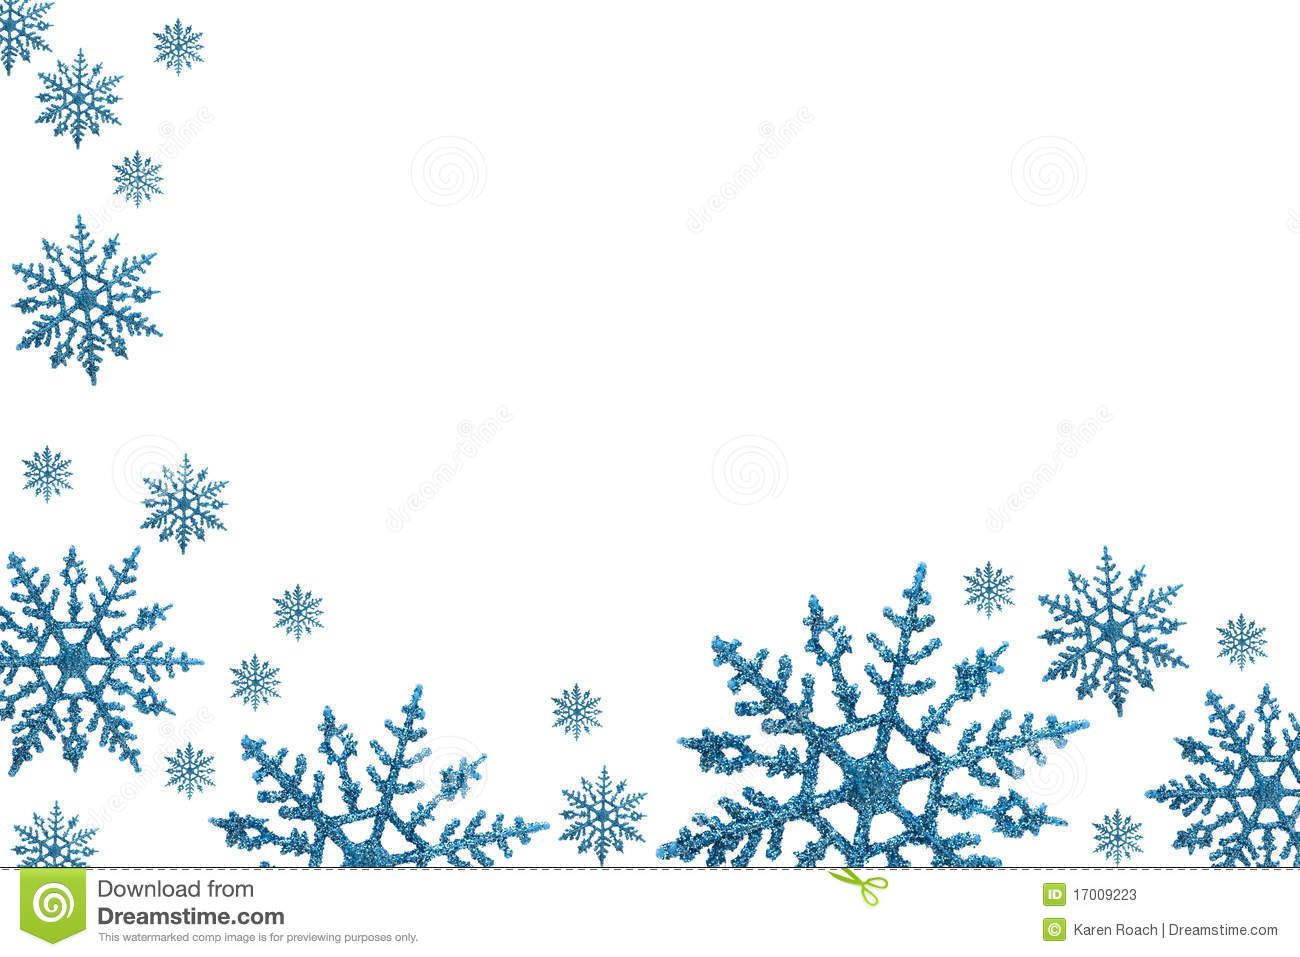 Free winter graphics clipart